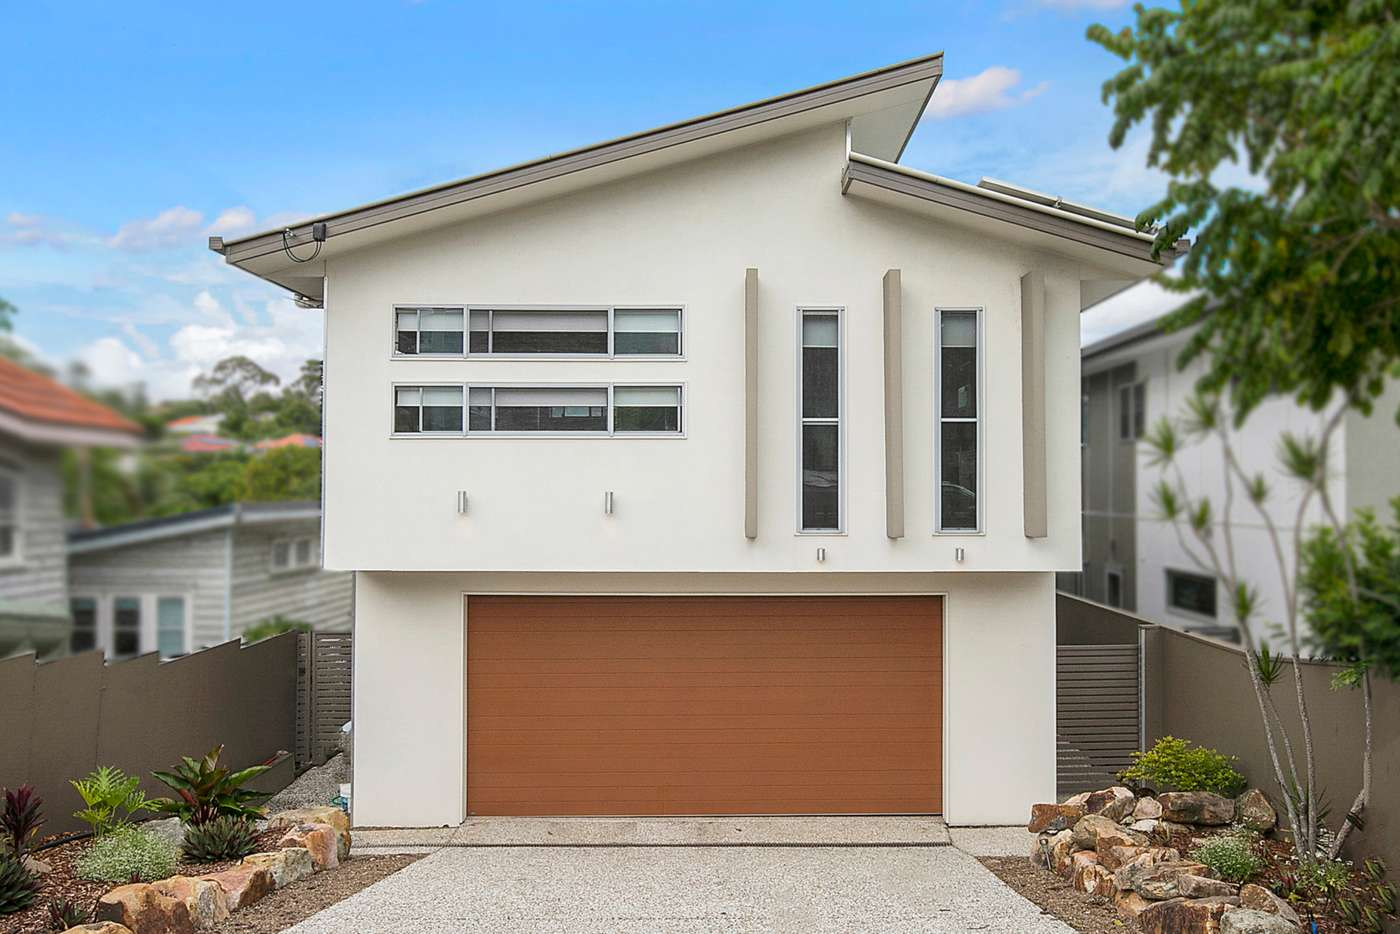 Main view of Homely house listing, 31 Gristock Street, Coorparoo QLD 4151